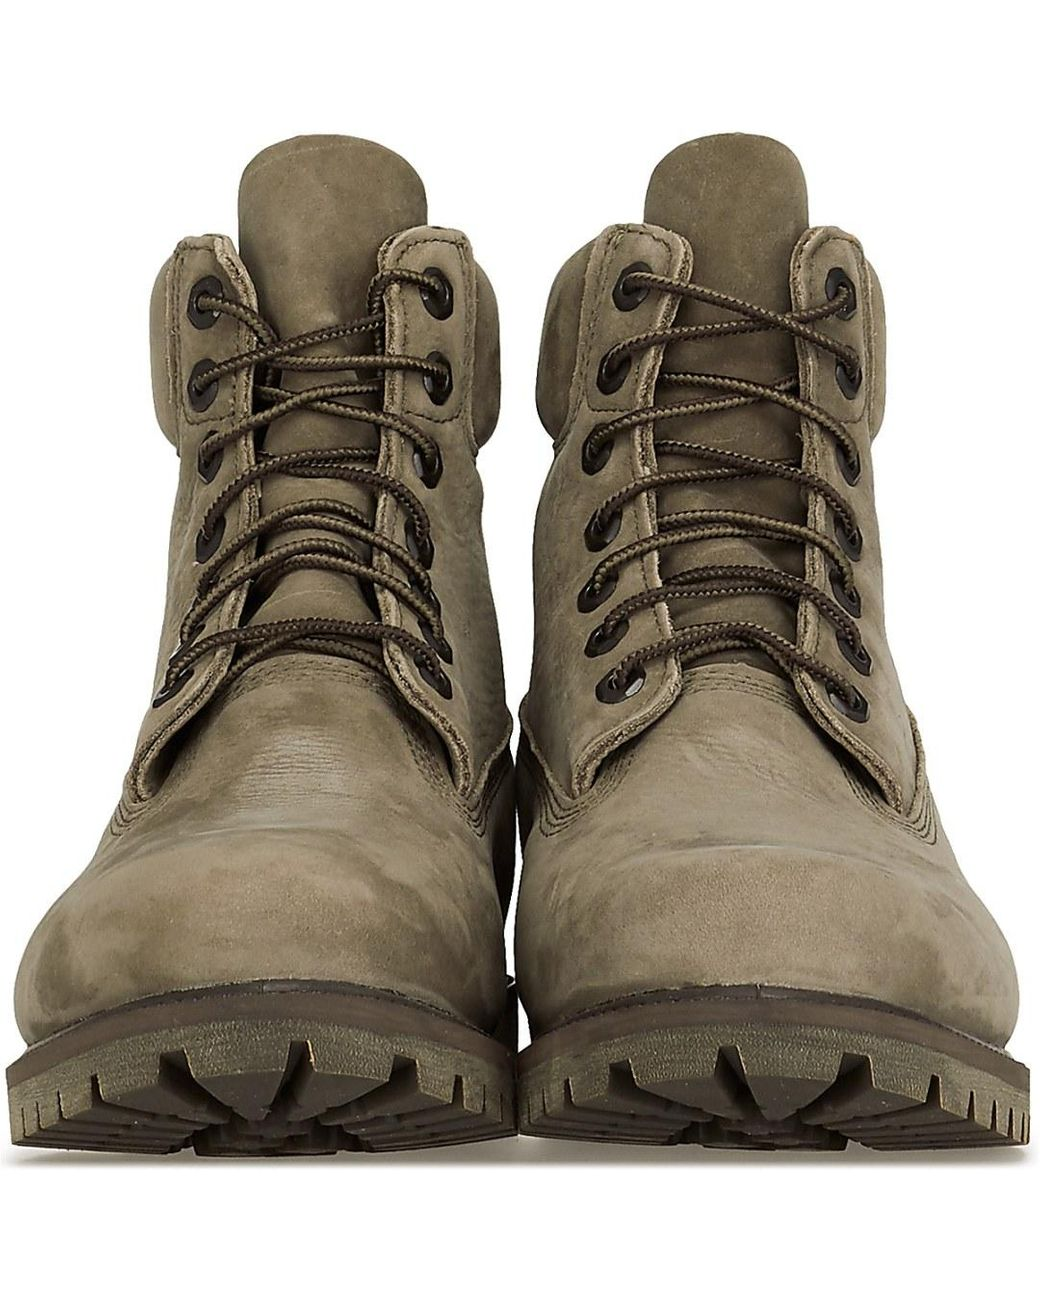 rutina autopista Culpable  Timberland Leather Heritage 6 Inch Boots in Olive (Green) for Men - Lyst